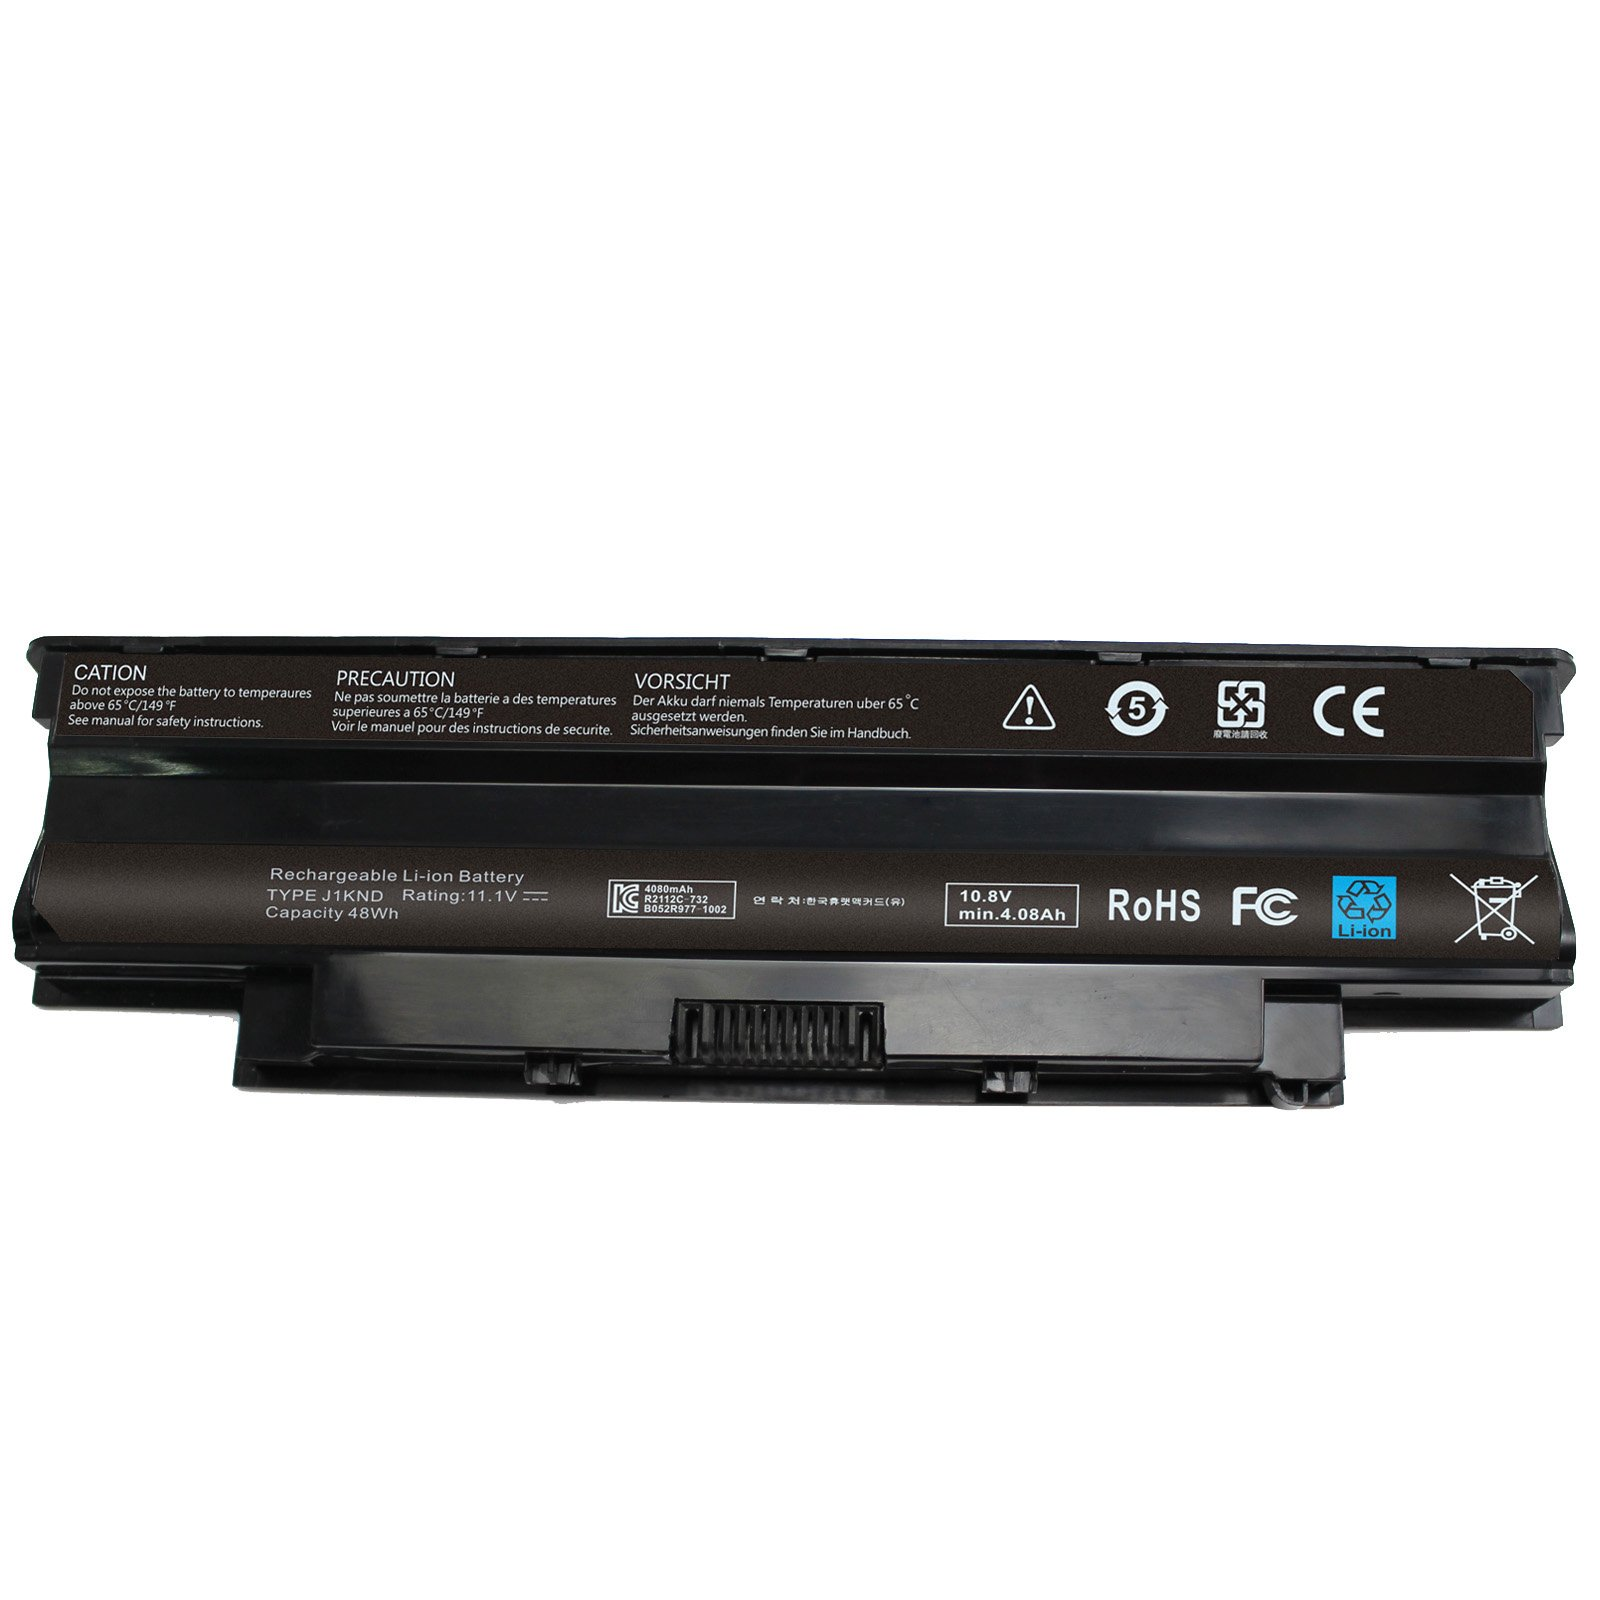 BATURU J1KND Laptop Battery for Dell Inspiron 3420 3520 N4110 N4010 N5010 N5030 N5050 N7010 N7110 M5030 M5010 vostro 3555 2520 4T7JN 9T48V 312-0234 - 12 Months Warranty